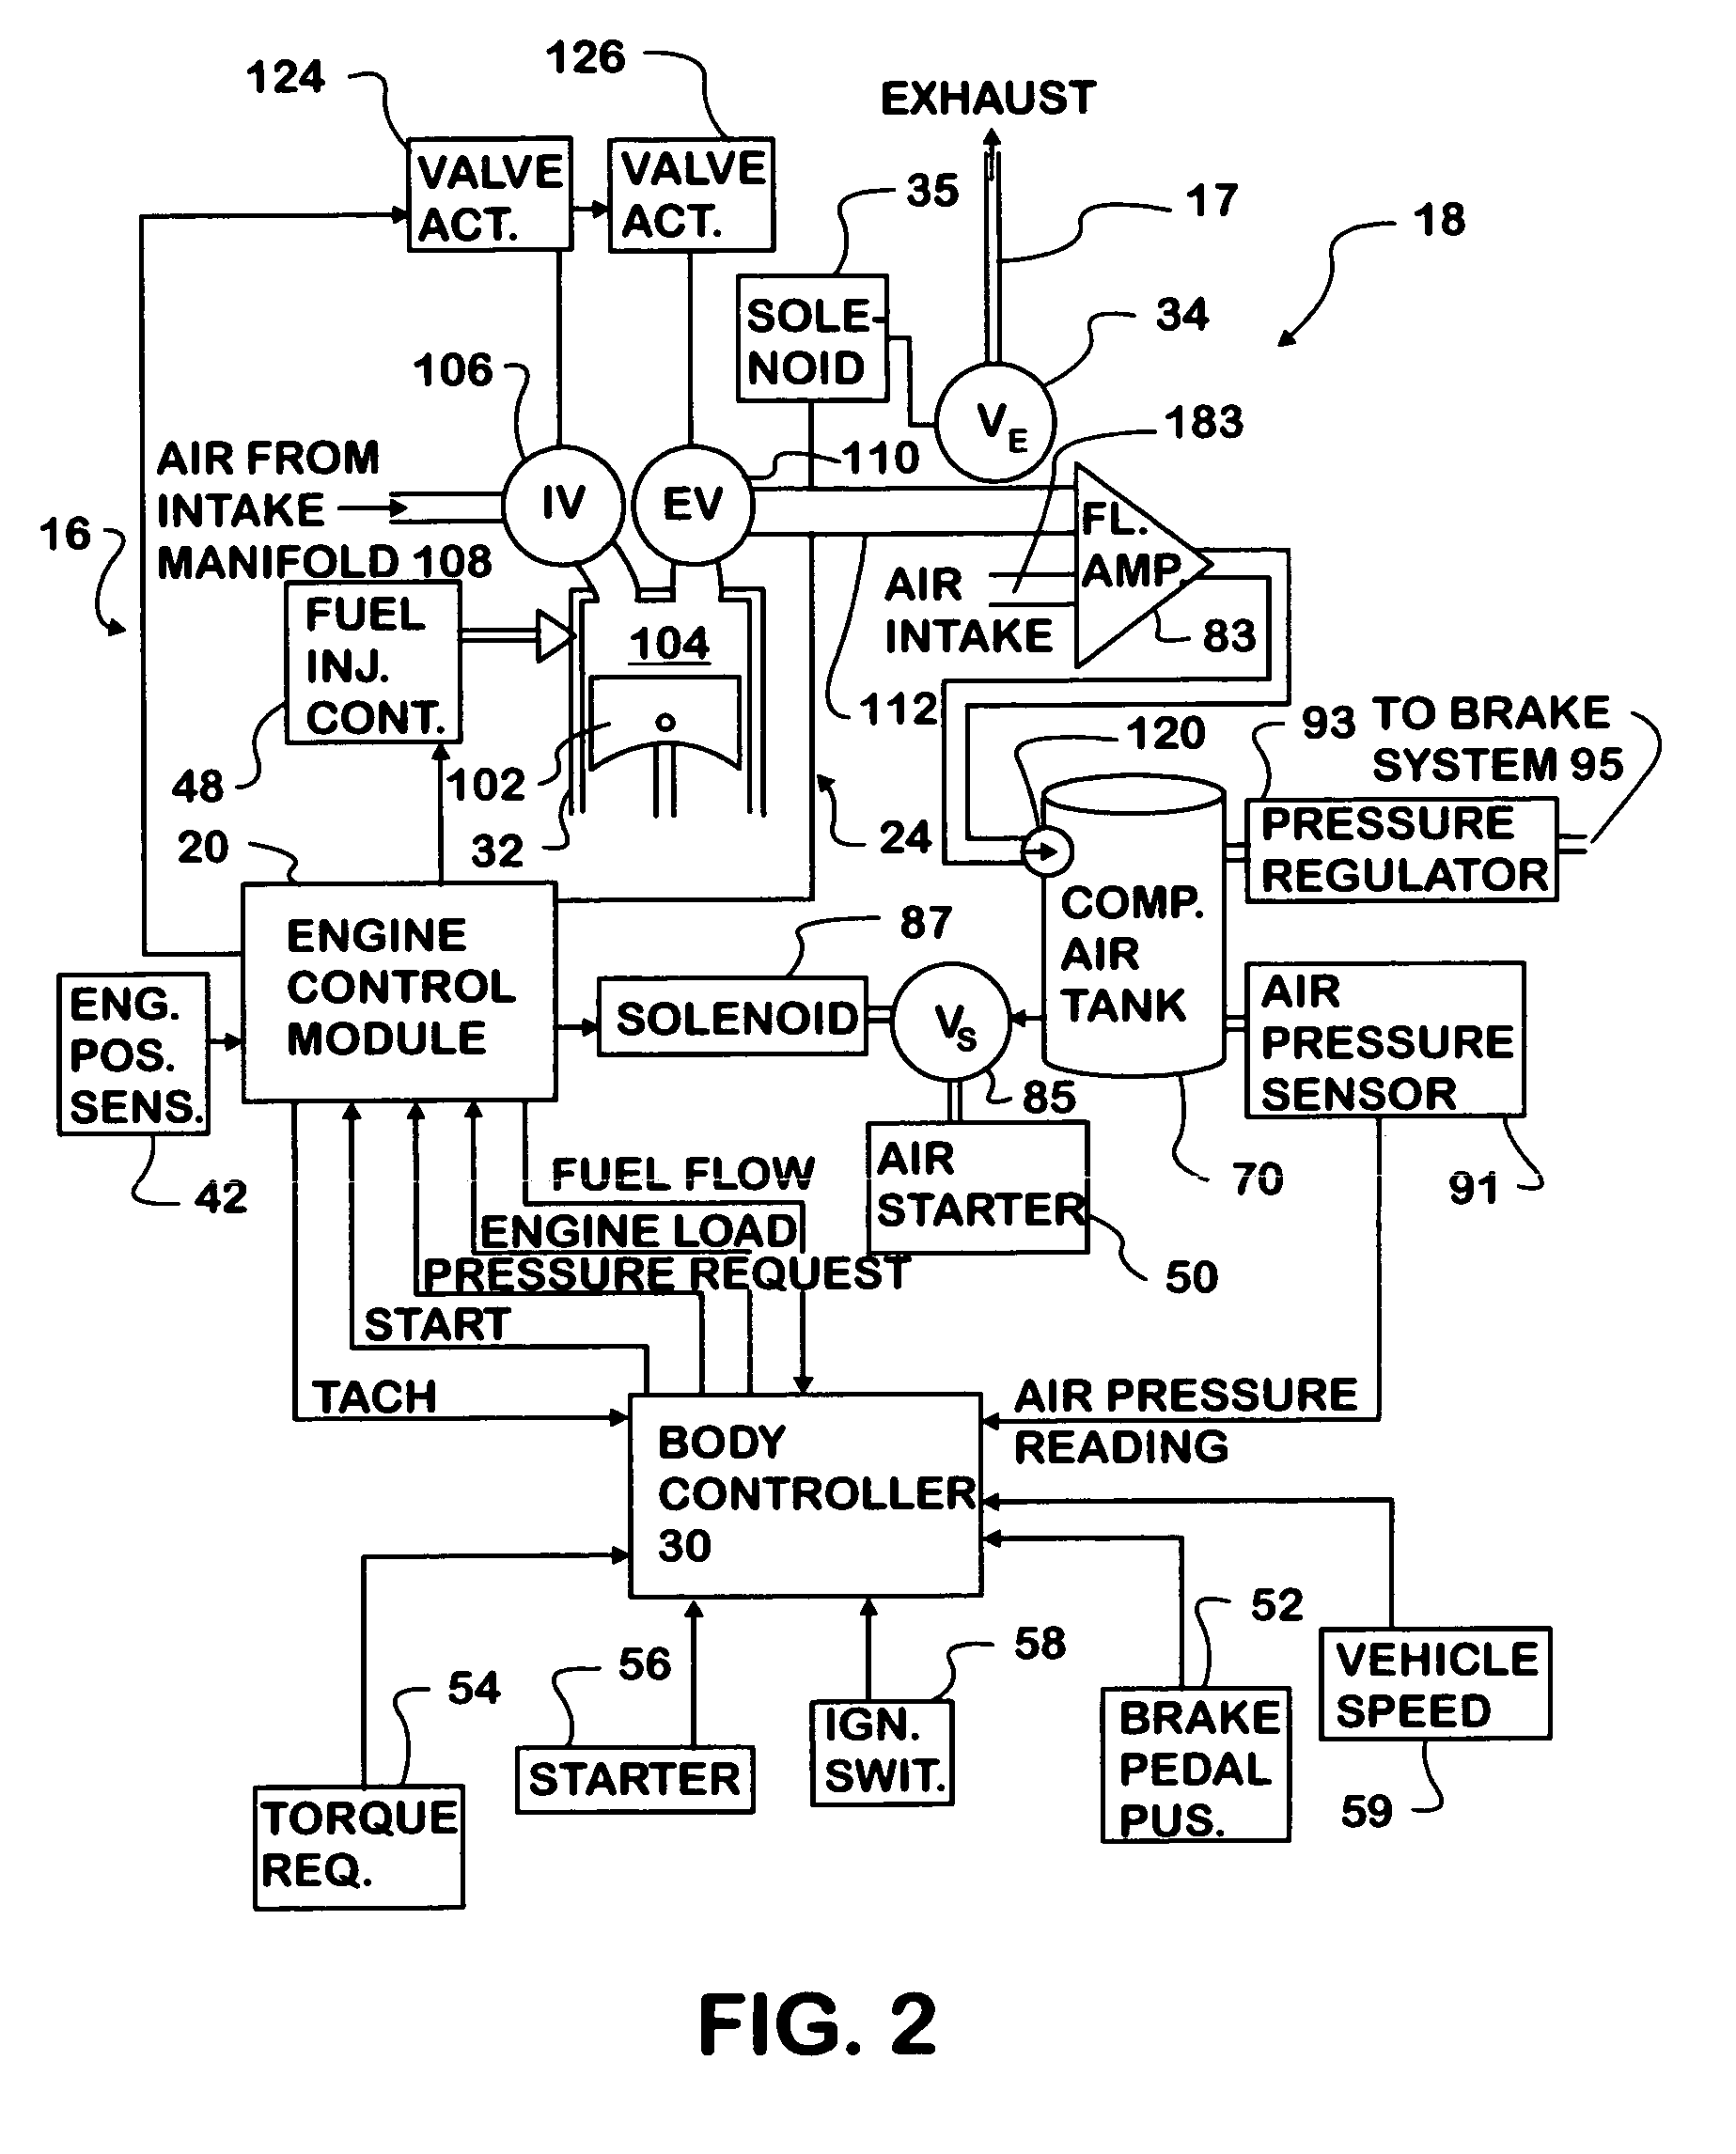 Patent Us6922997 - Engine Based Kinetic Energy Recovery System For Vehicles